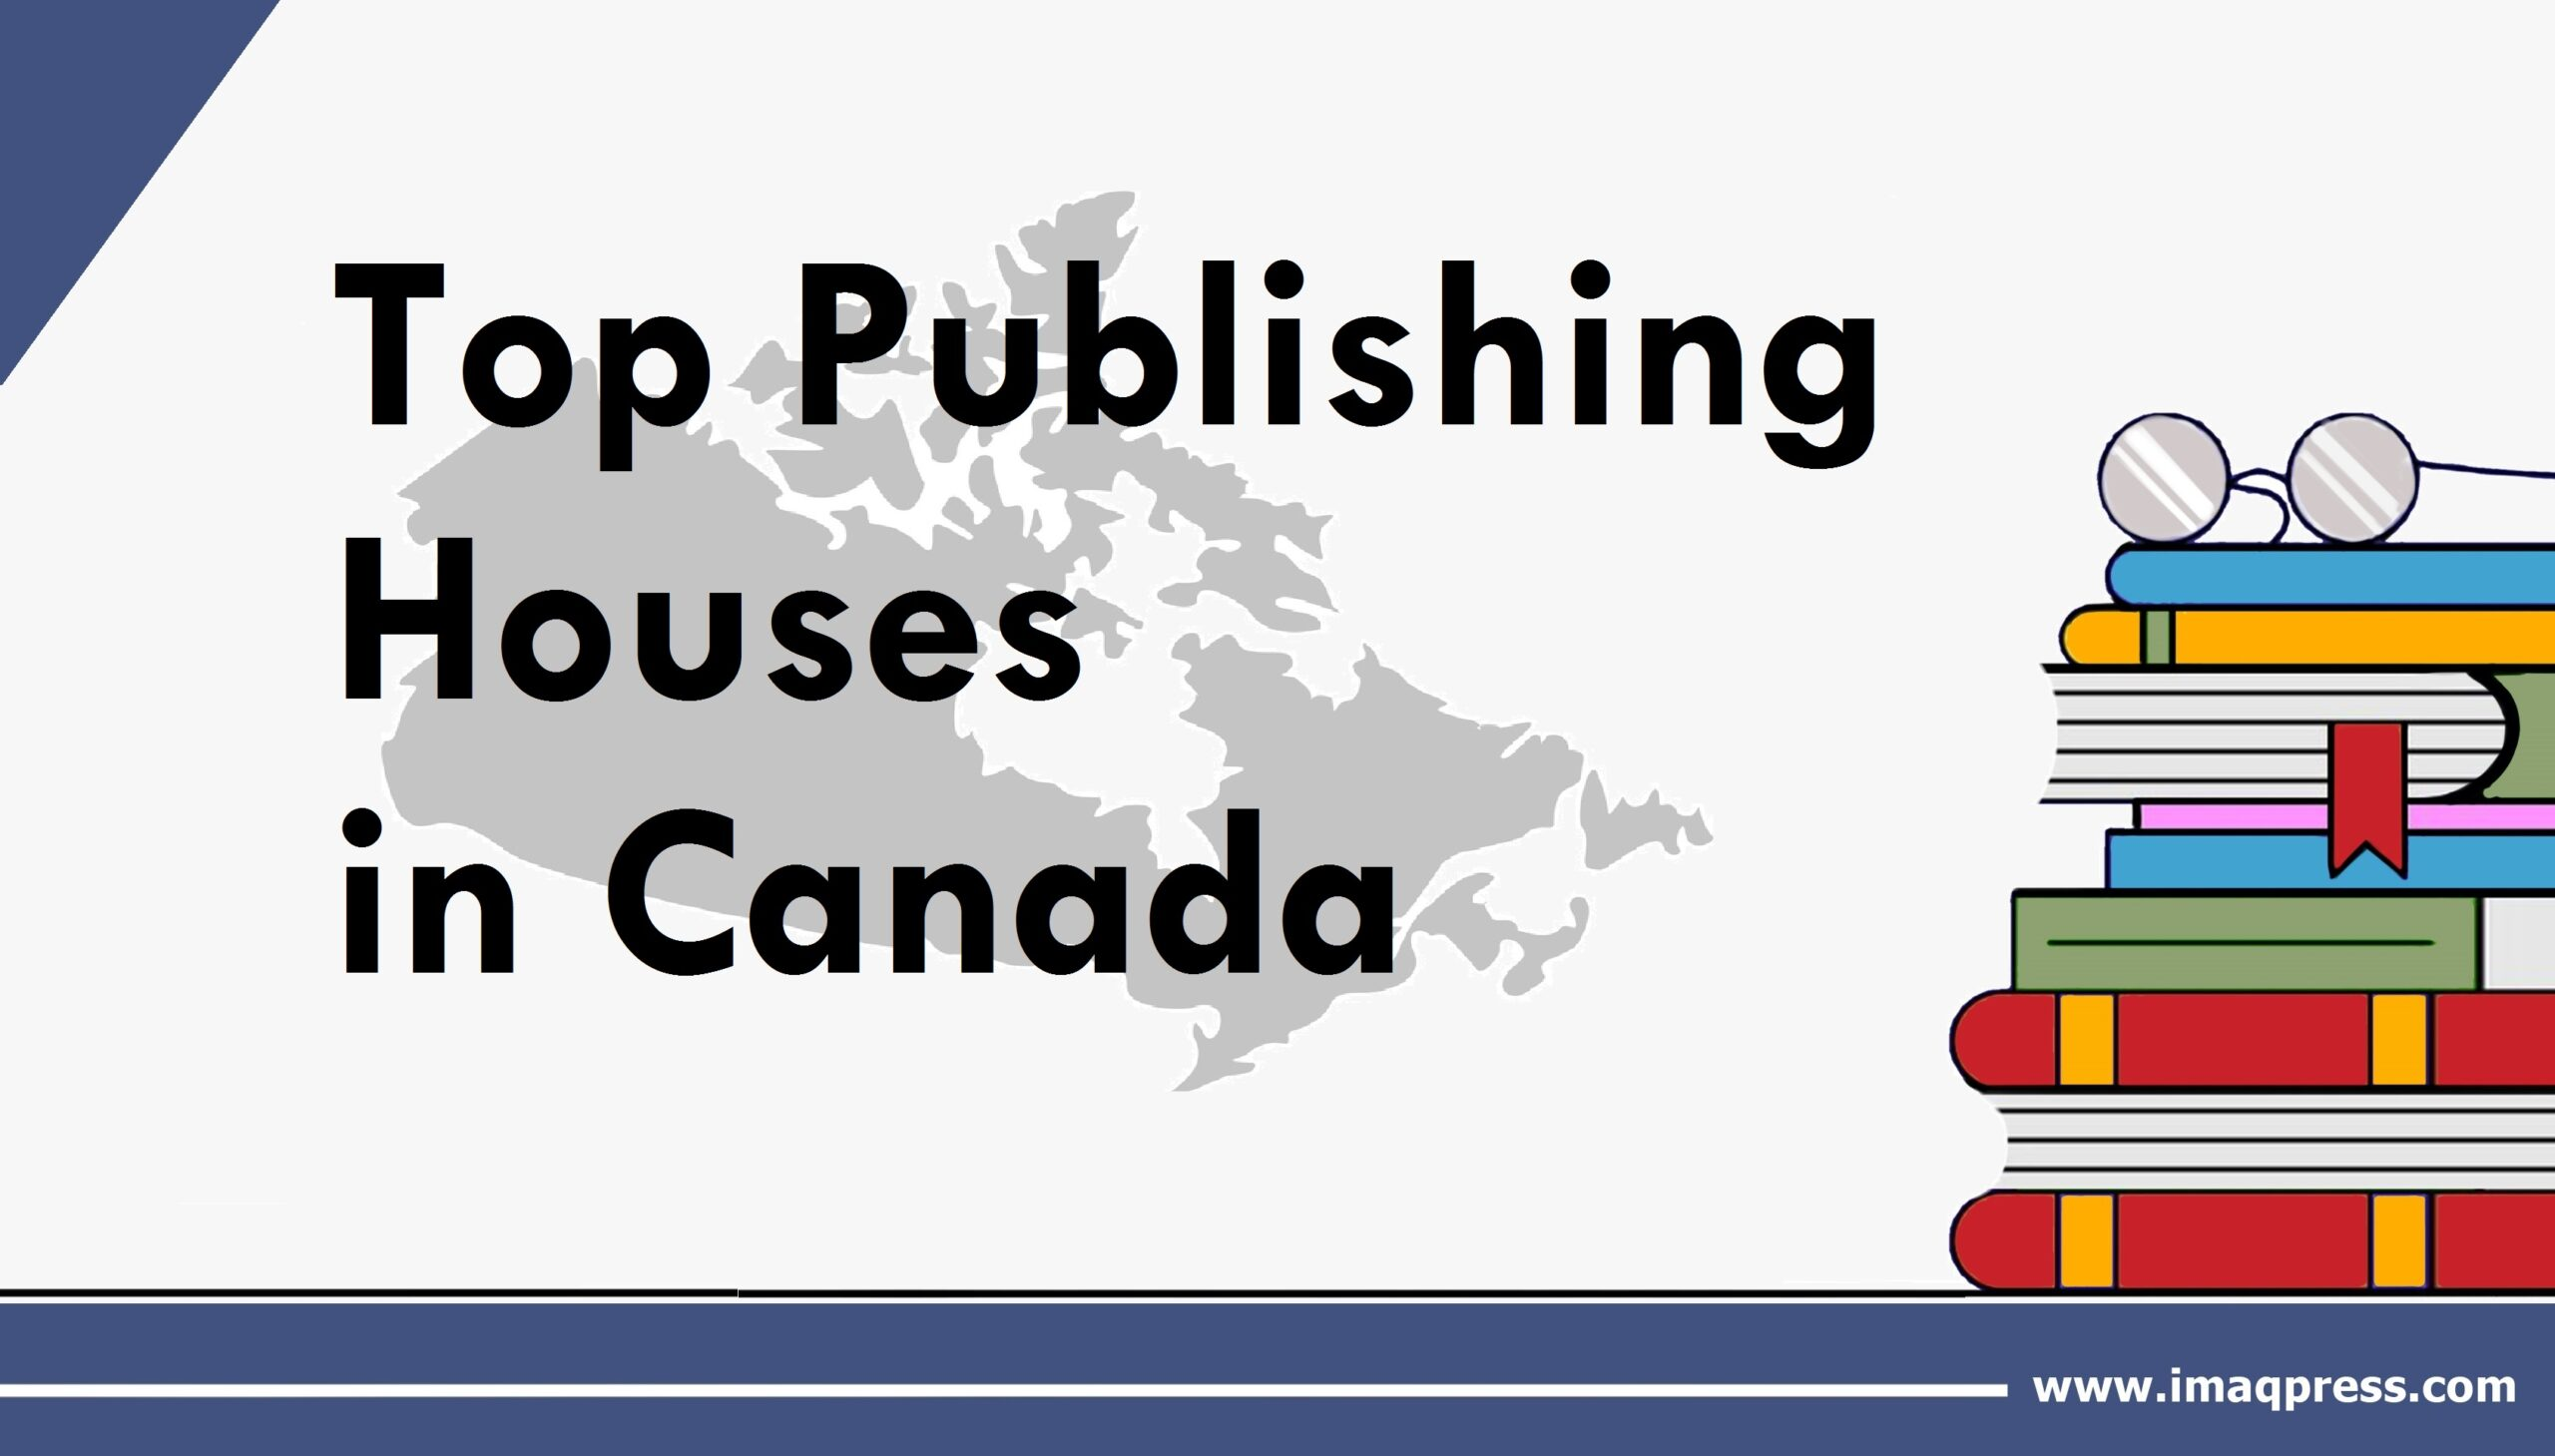 Top Publishing Houses in Canada